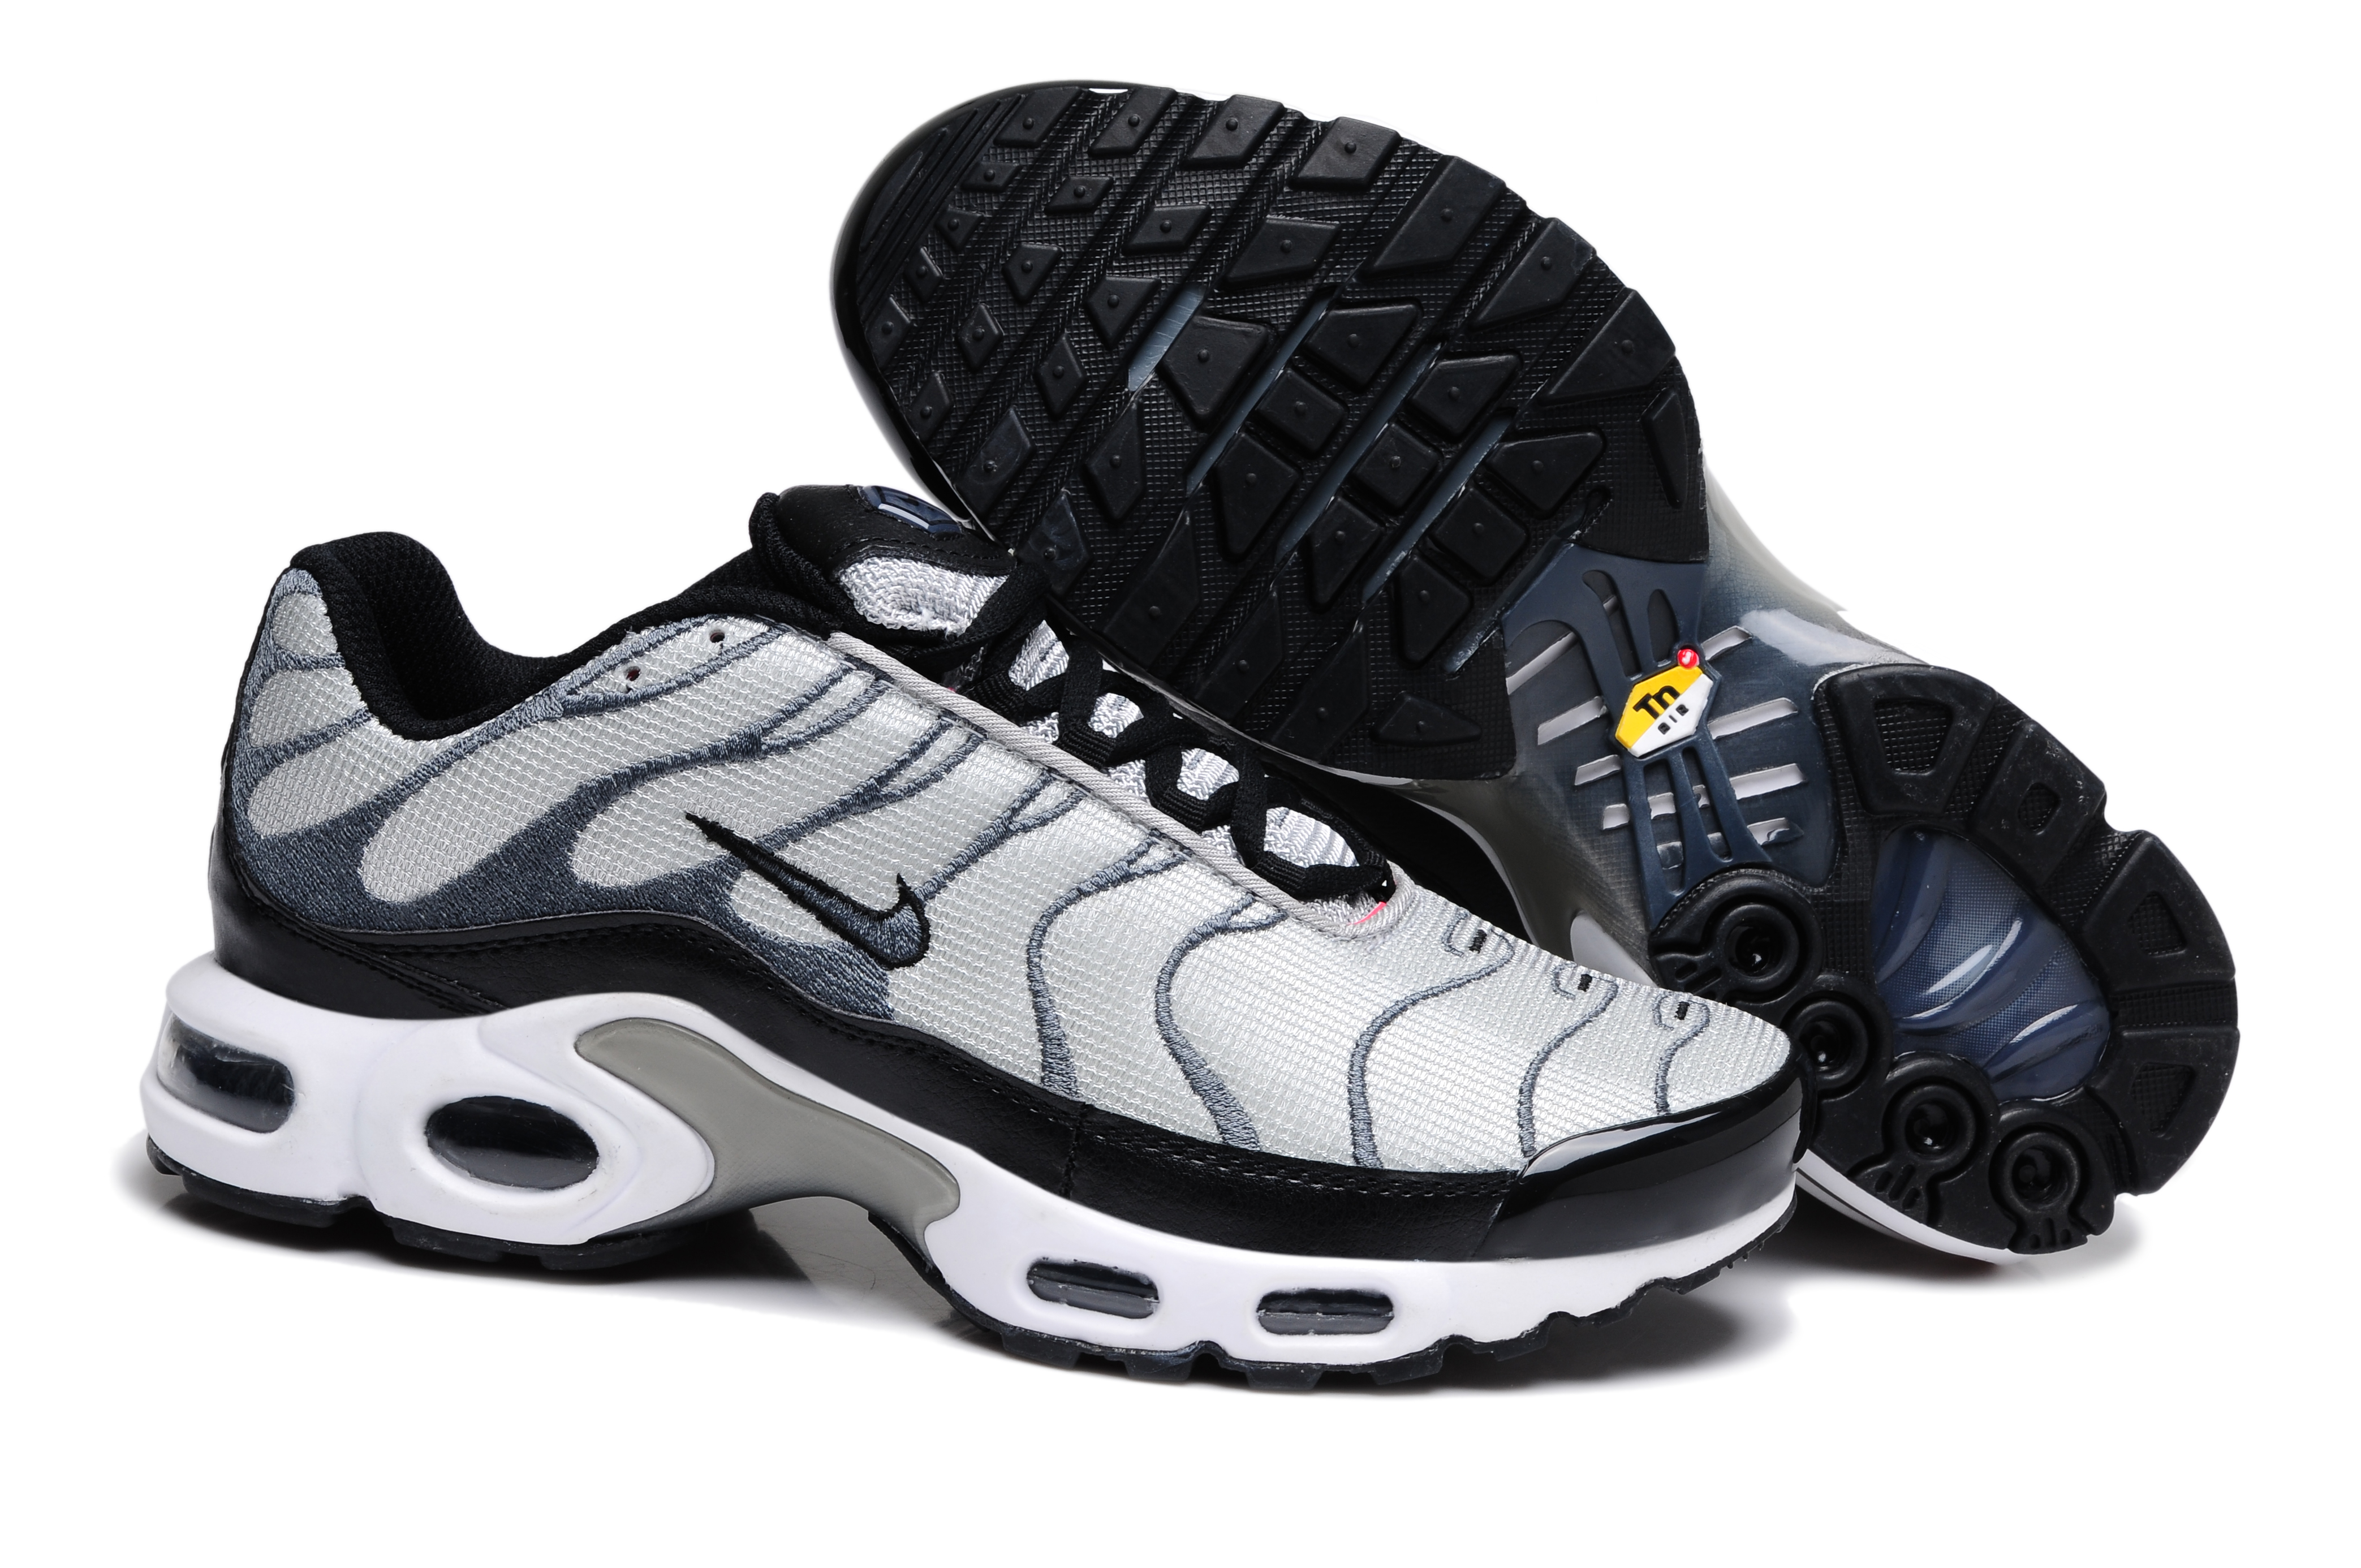 Chaussures de Nike Air Max Tn Requin Homme Gris et Or (Chaussure Homme Tn)